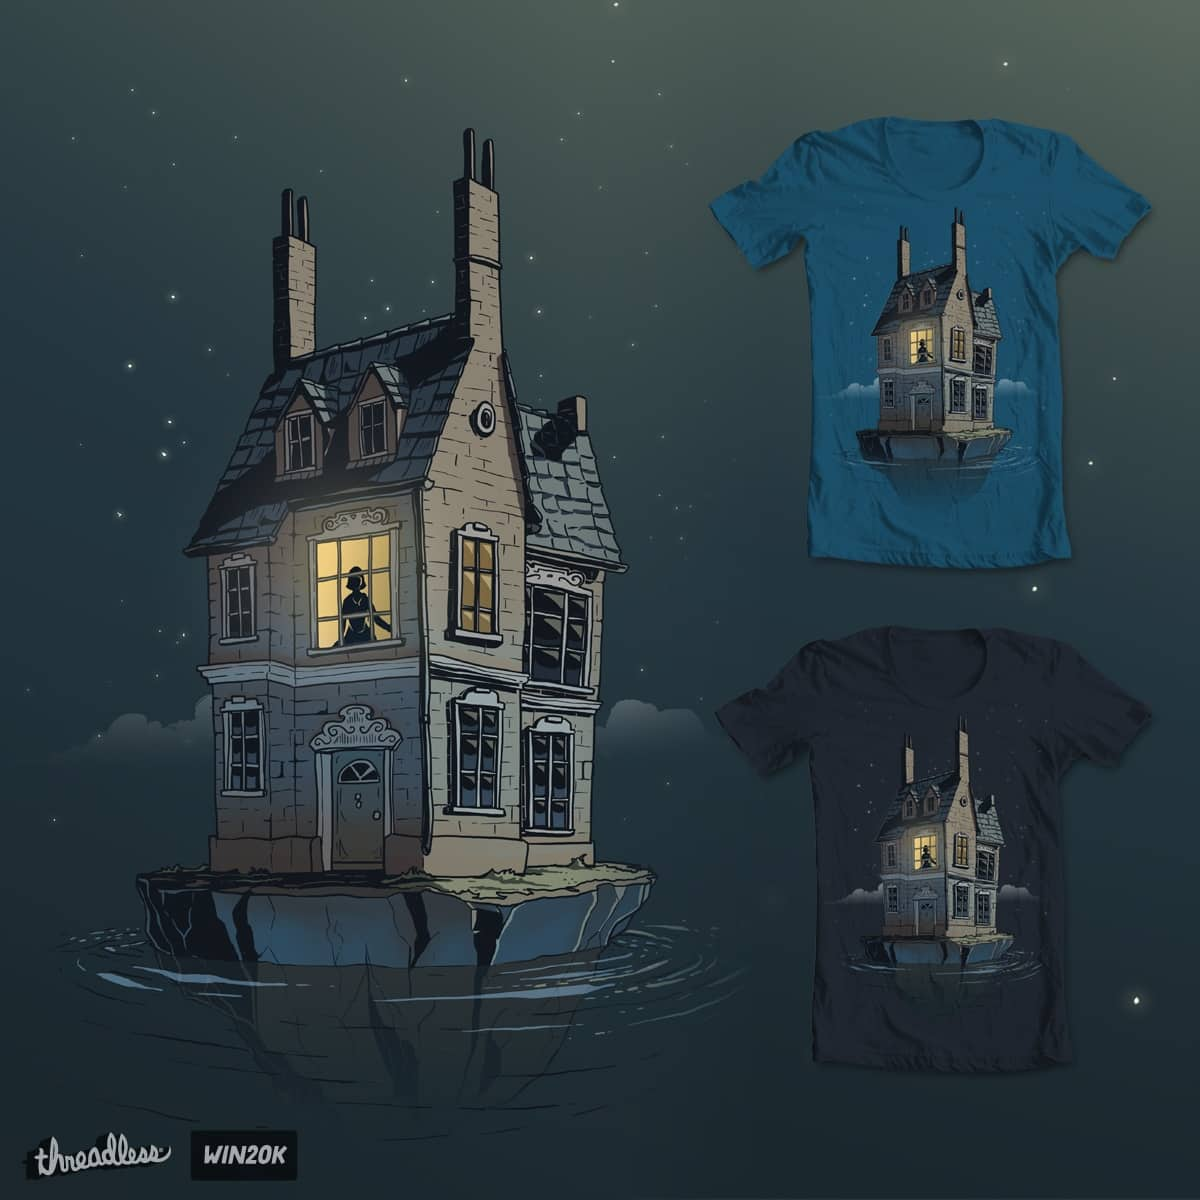 English House by Stirpel Gonzales on Threadless